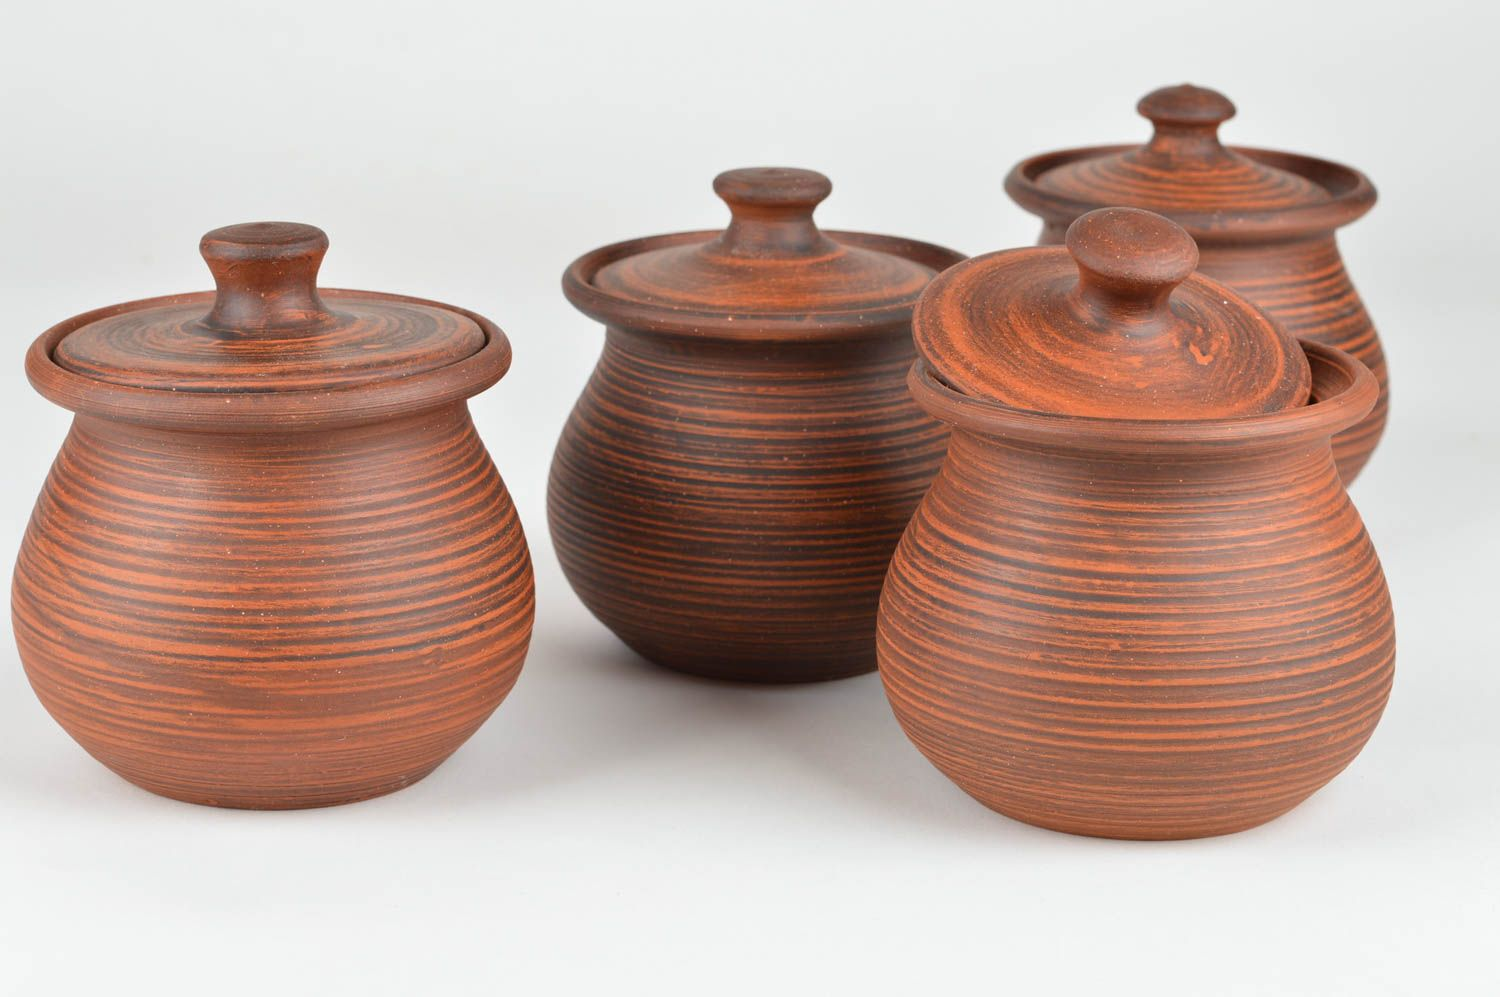 Set of handmade ceramic pots with lids for baking 4 items for 400 ml photo 1